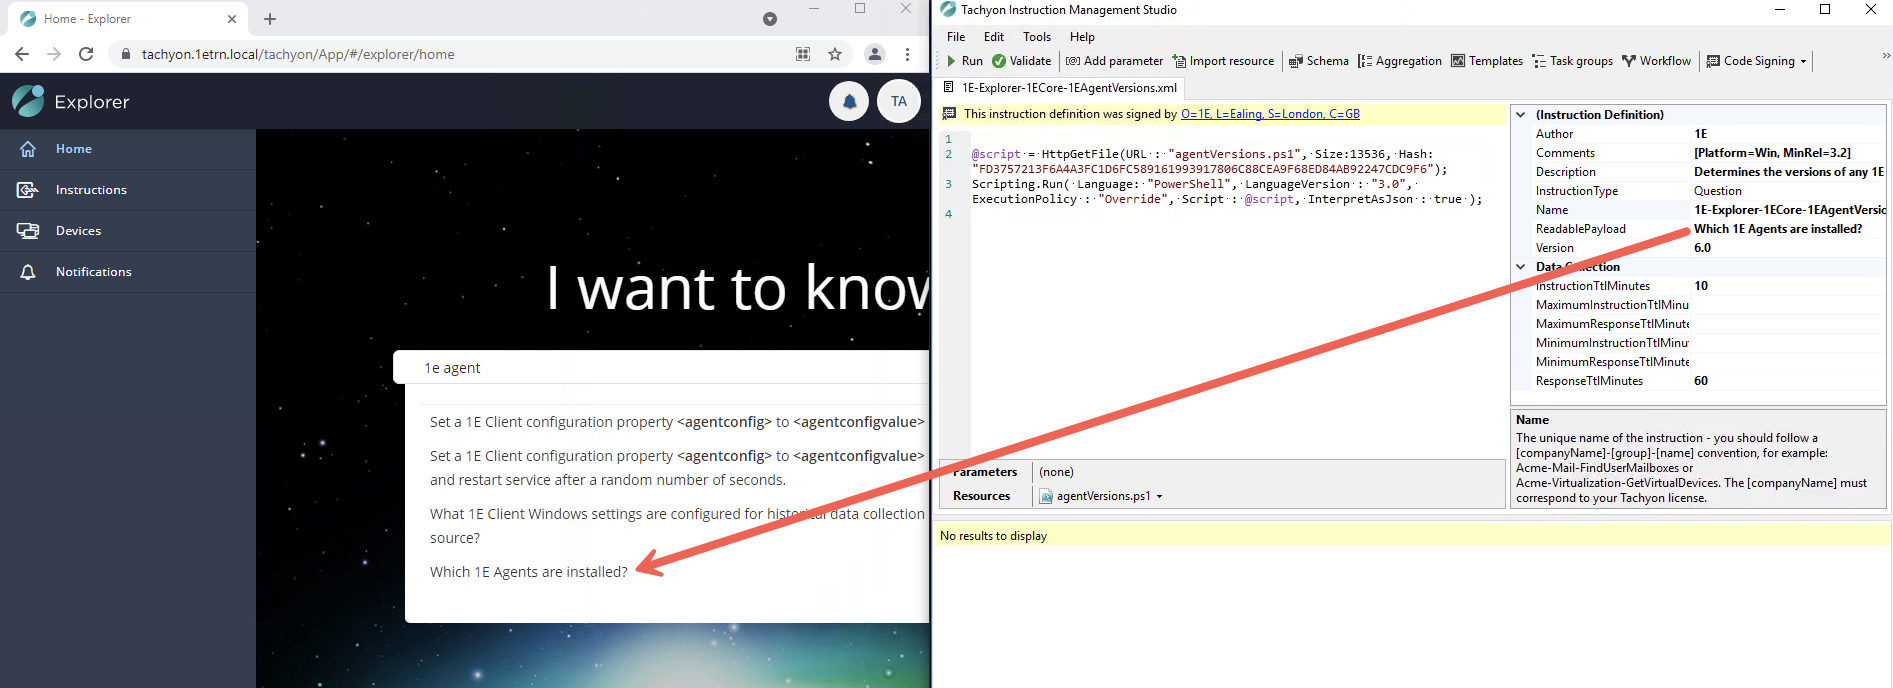 instruction configuration in TIMS correlates to what you'd see in Explorer